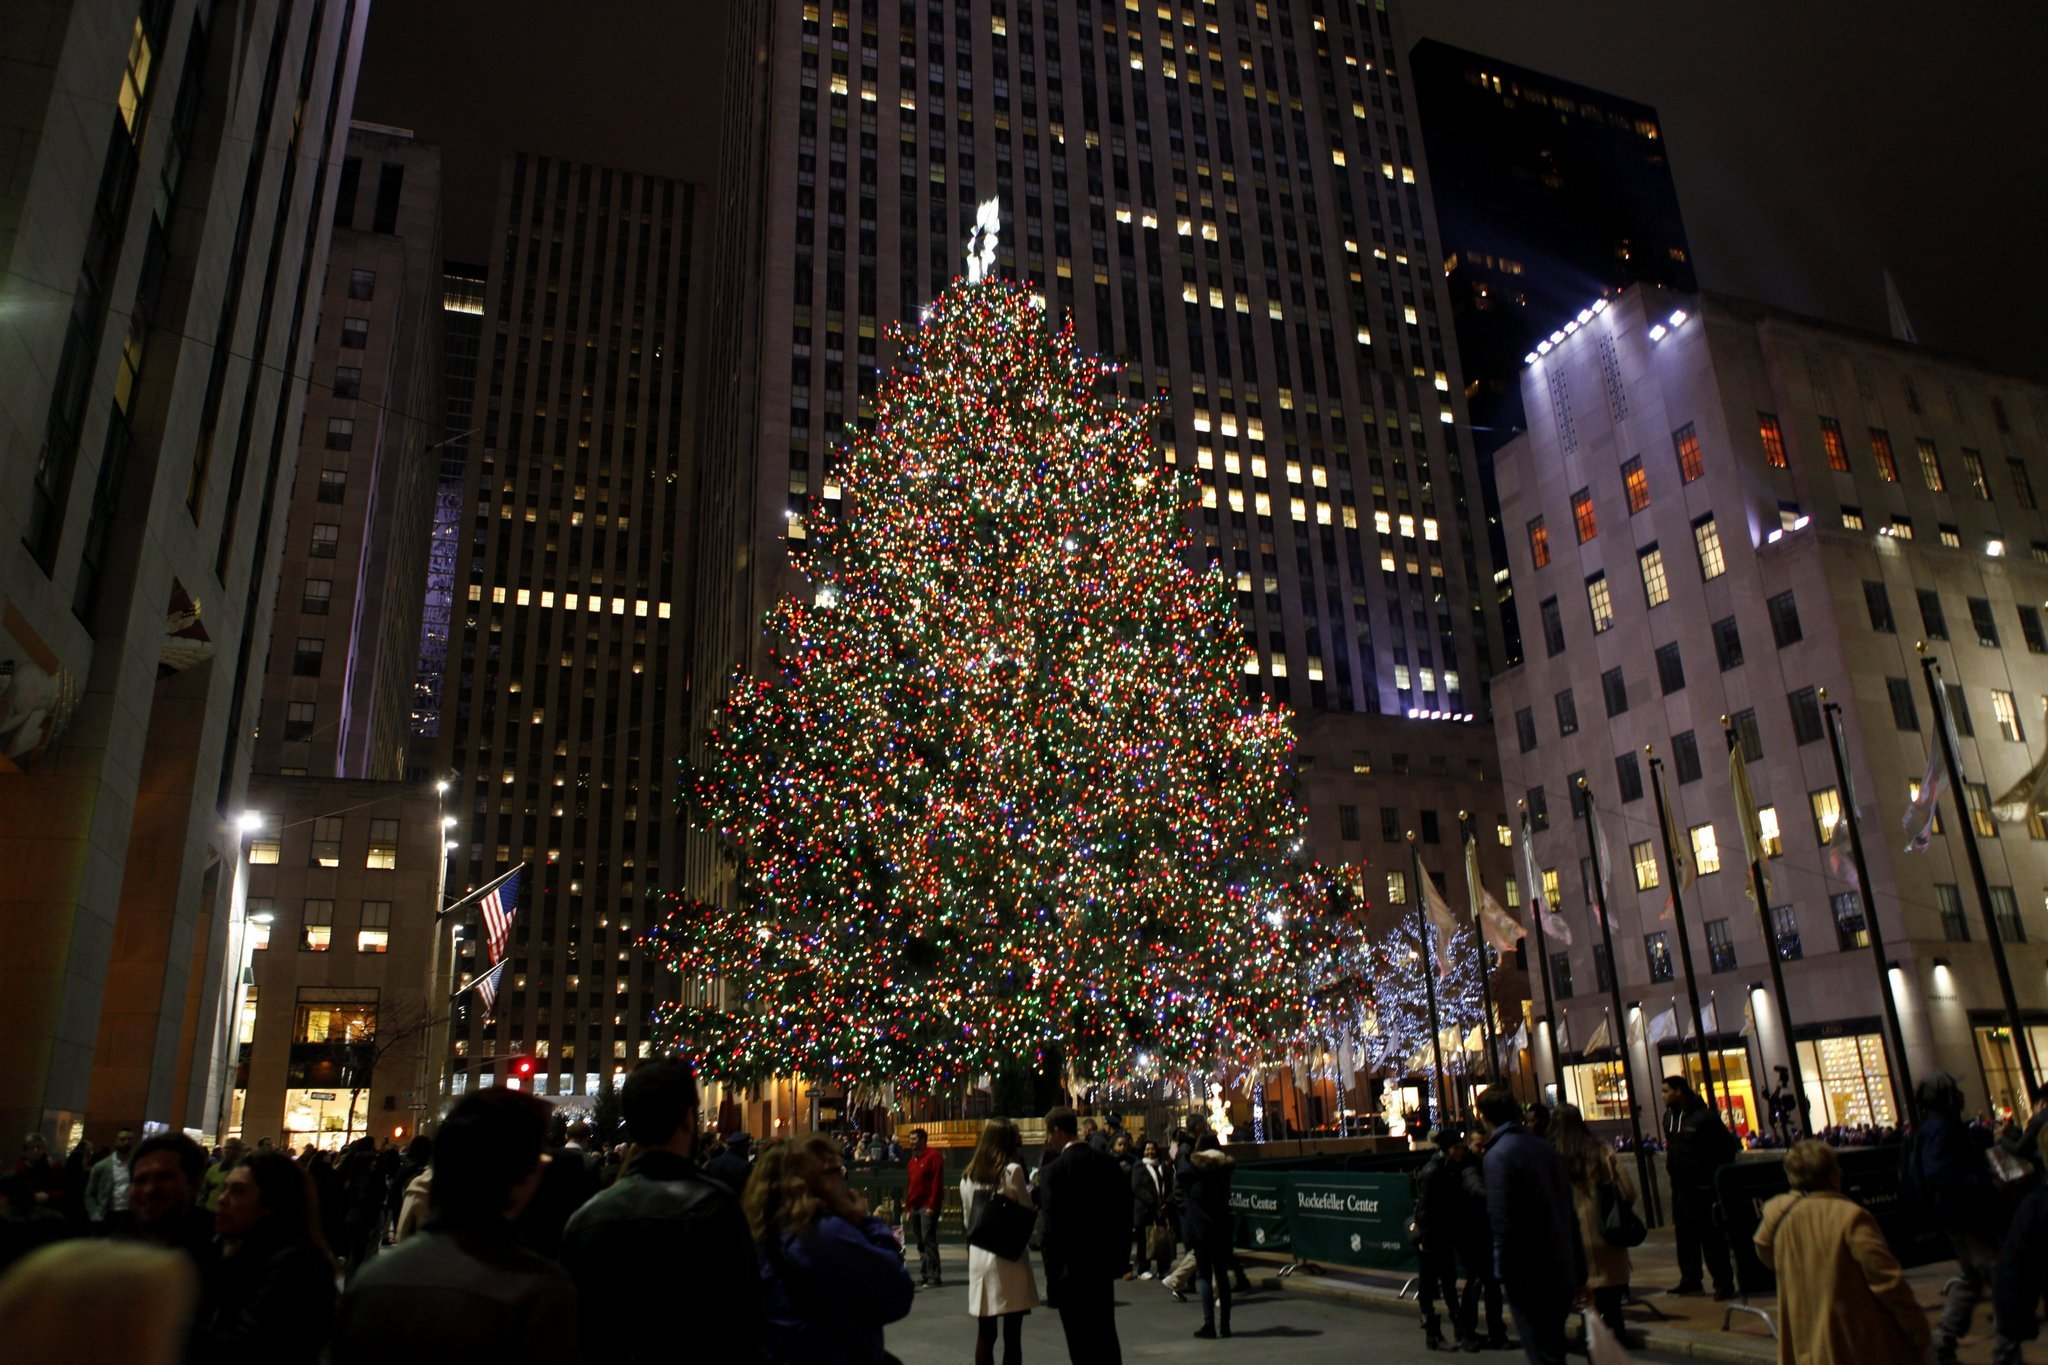 61 Days To Christmas Top 10 Places To Visit In New York City 18 days to christmas 61 Days To Christmas: Top 10 Places To Visit In New York City 🎄 61 Days To Christmas Top 10 Places To Visit In New York City 19